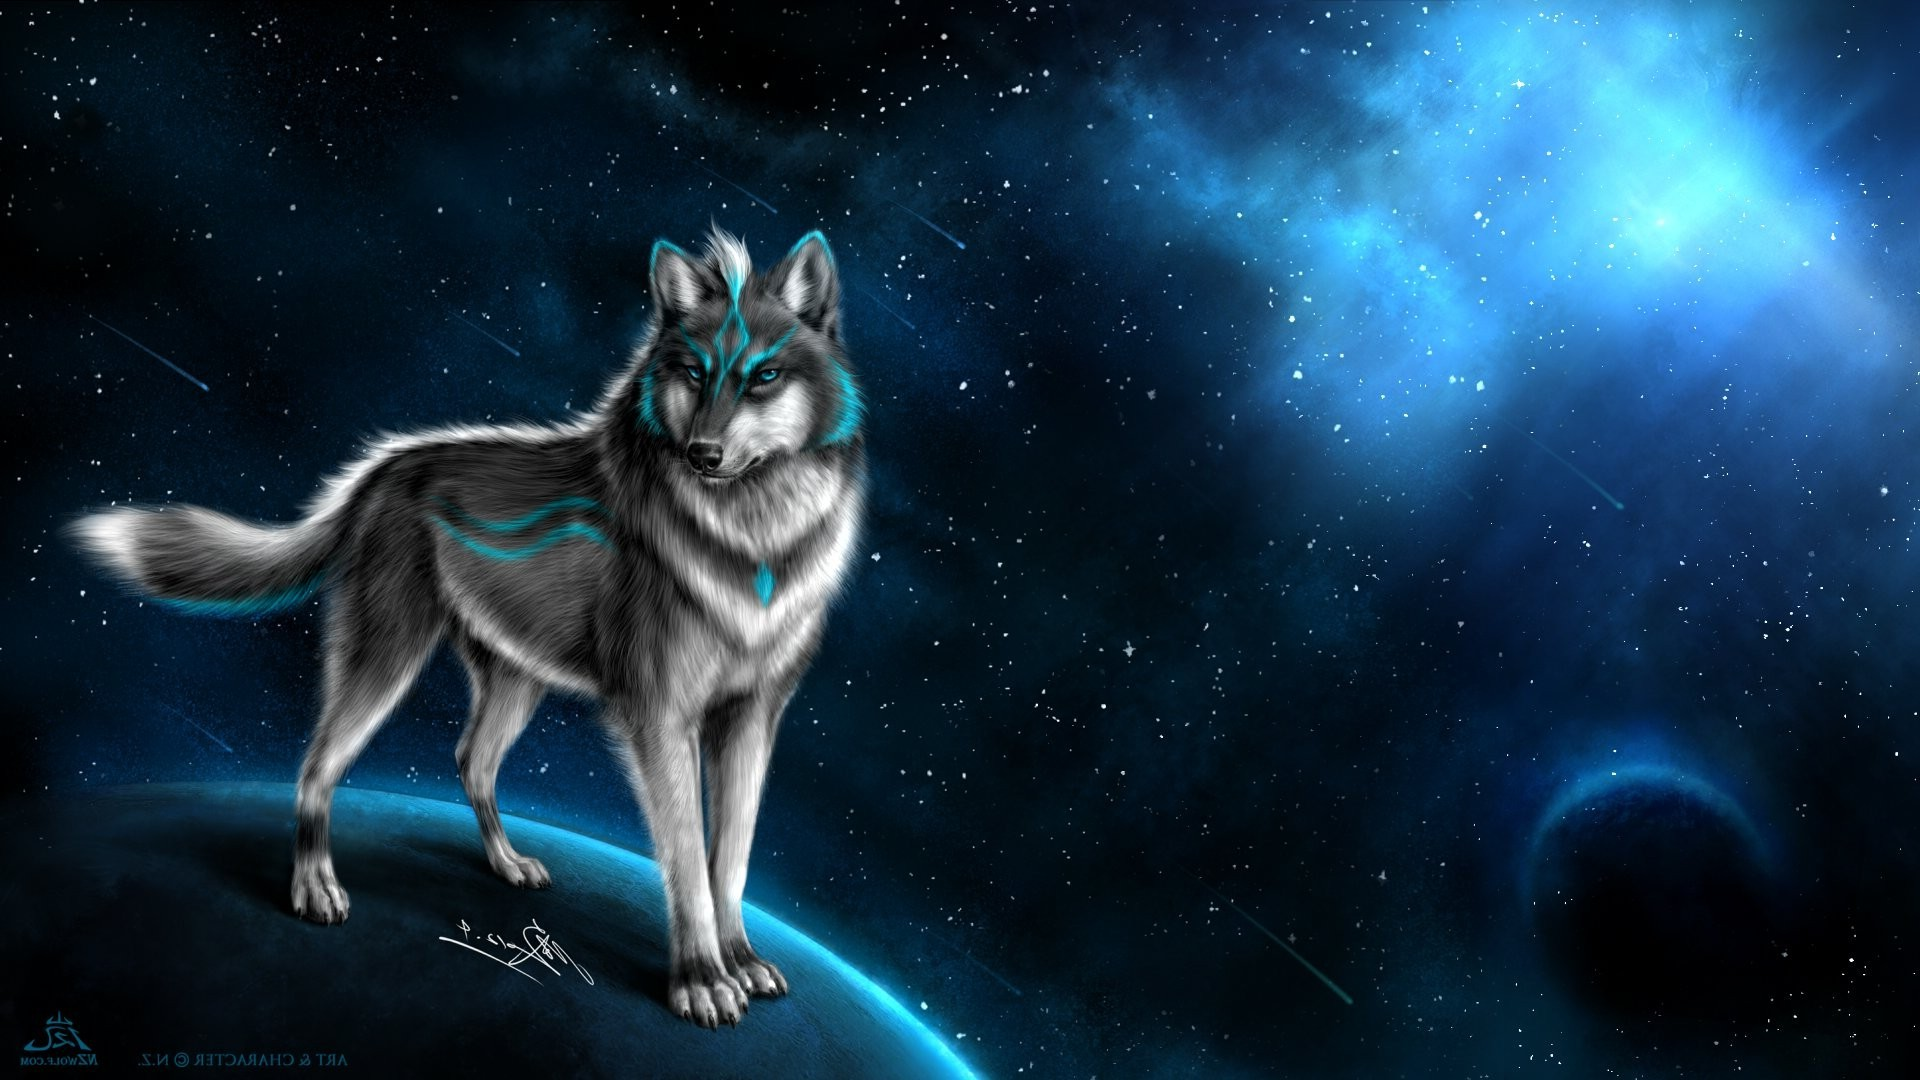 1920x1080 wolf, Animals, Fantasy Art, Artwork, Space, Stars, Planet, Digital Art  Wallpapers HD / Desktop and Mobile Backgrounds